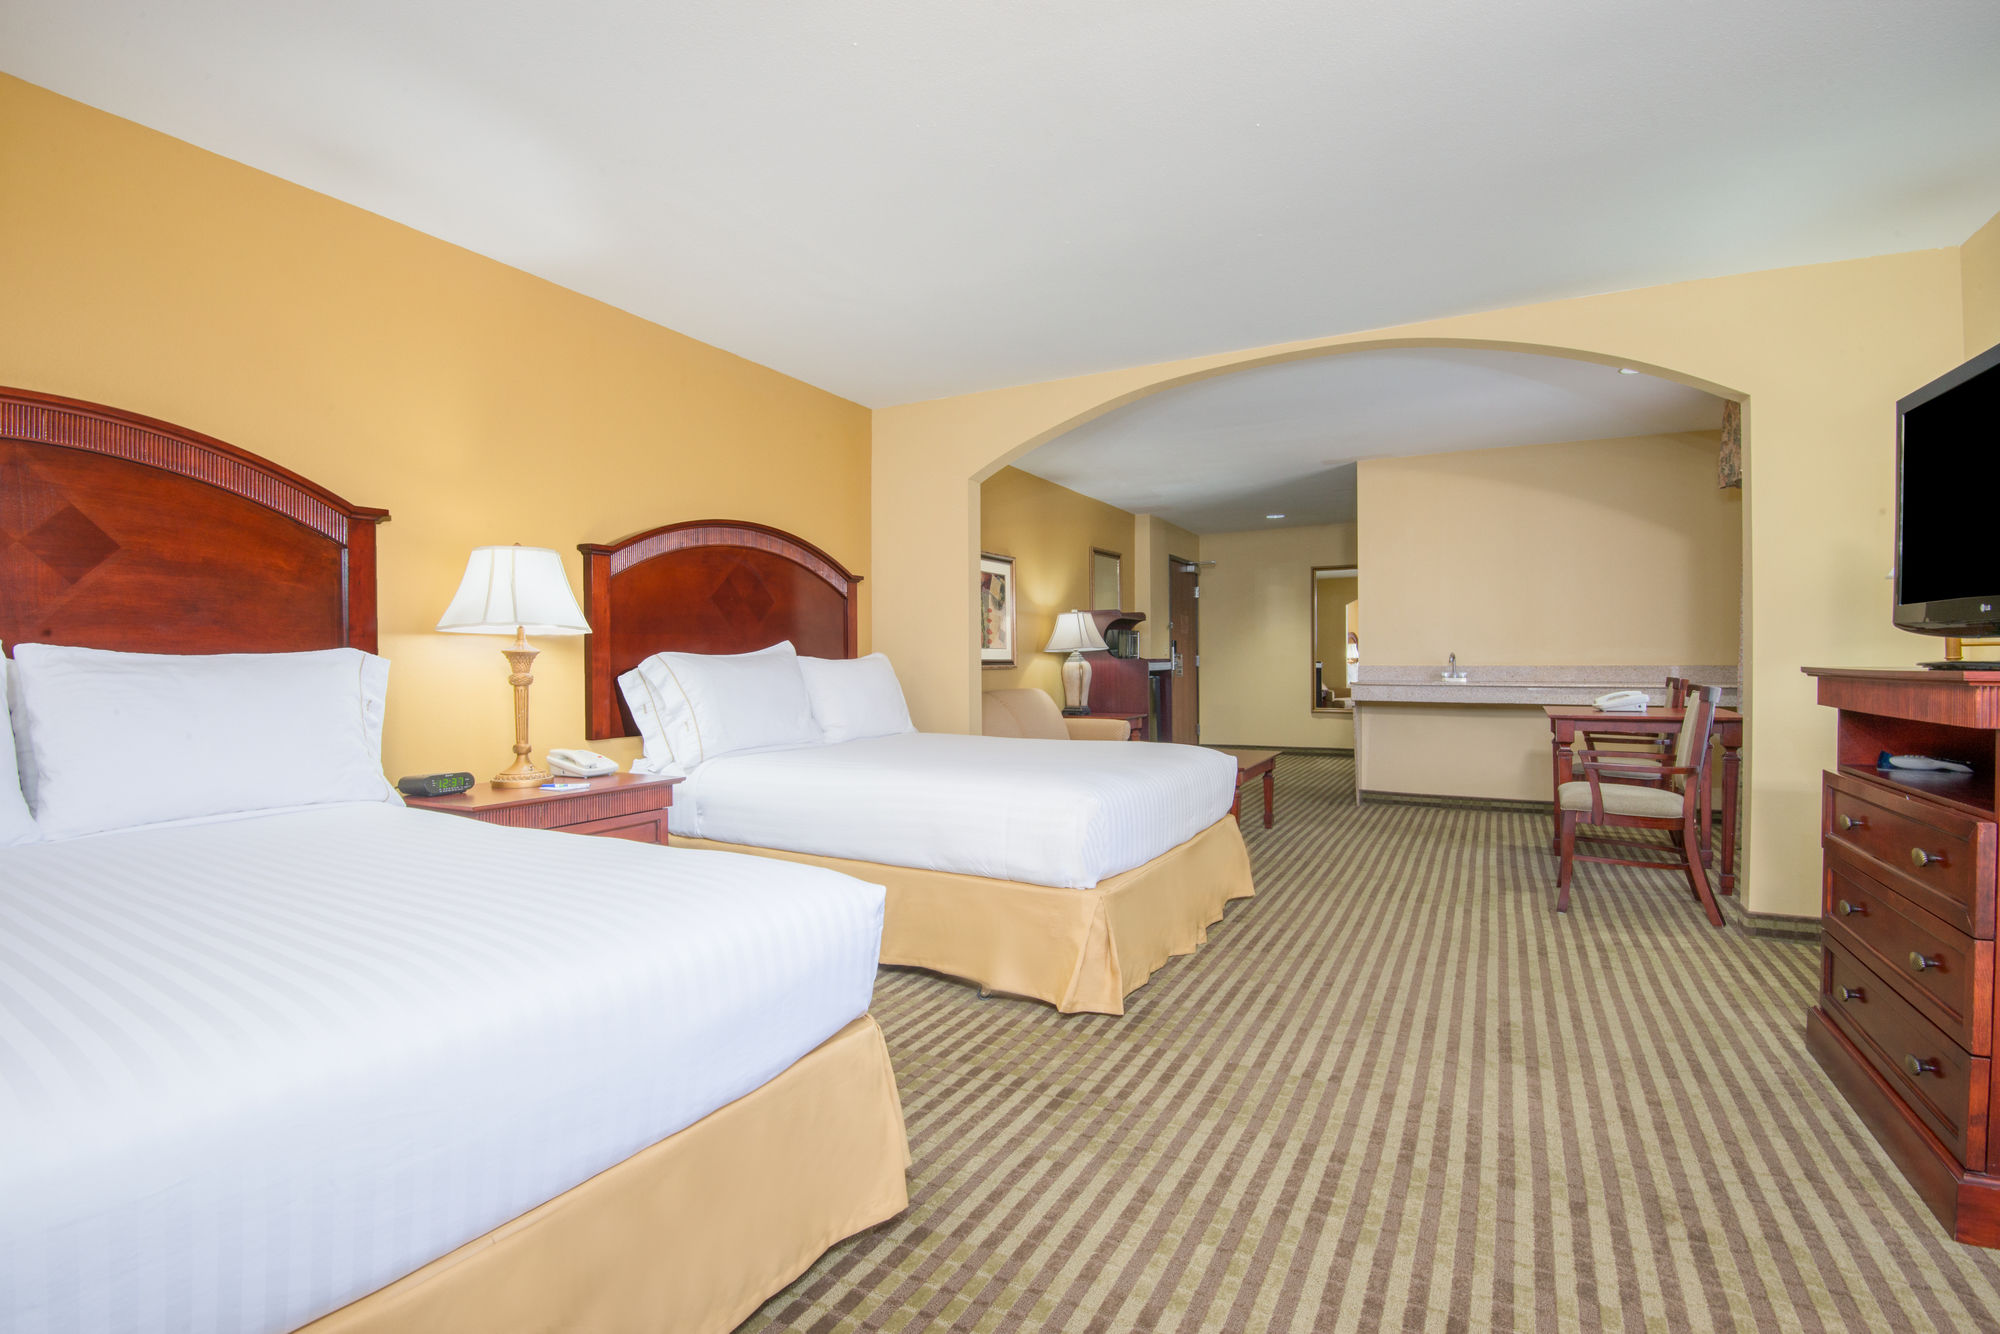 enid hotel coupons for enid oklahoma freehotelcoupons com rh freehotelcoupons com